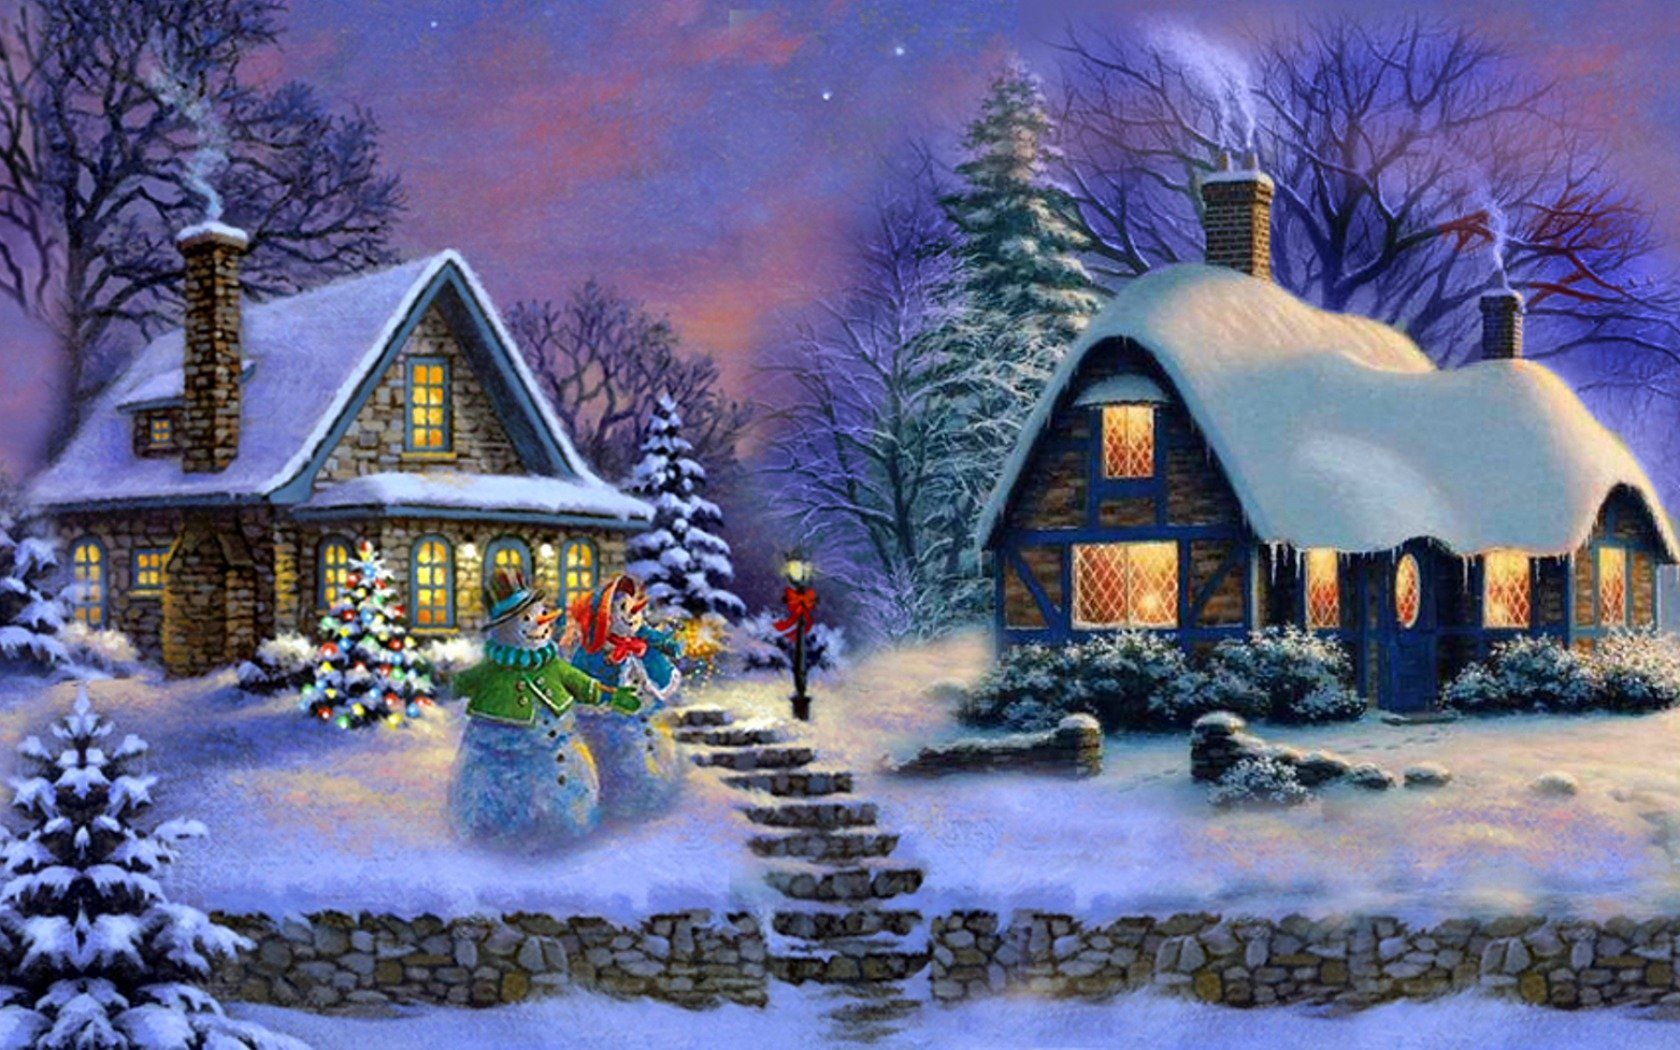 Christmas Painting Wallpaper and Background Image  1680x1050  ID749919  Wallpaper Abyss